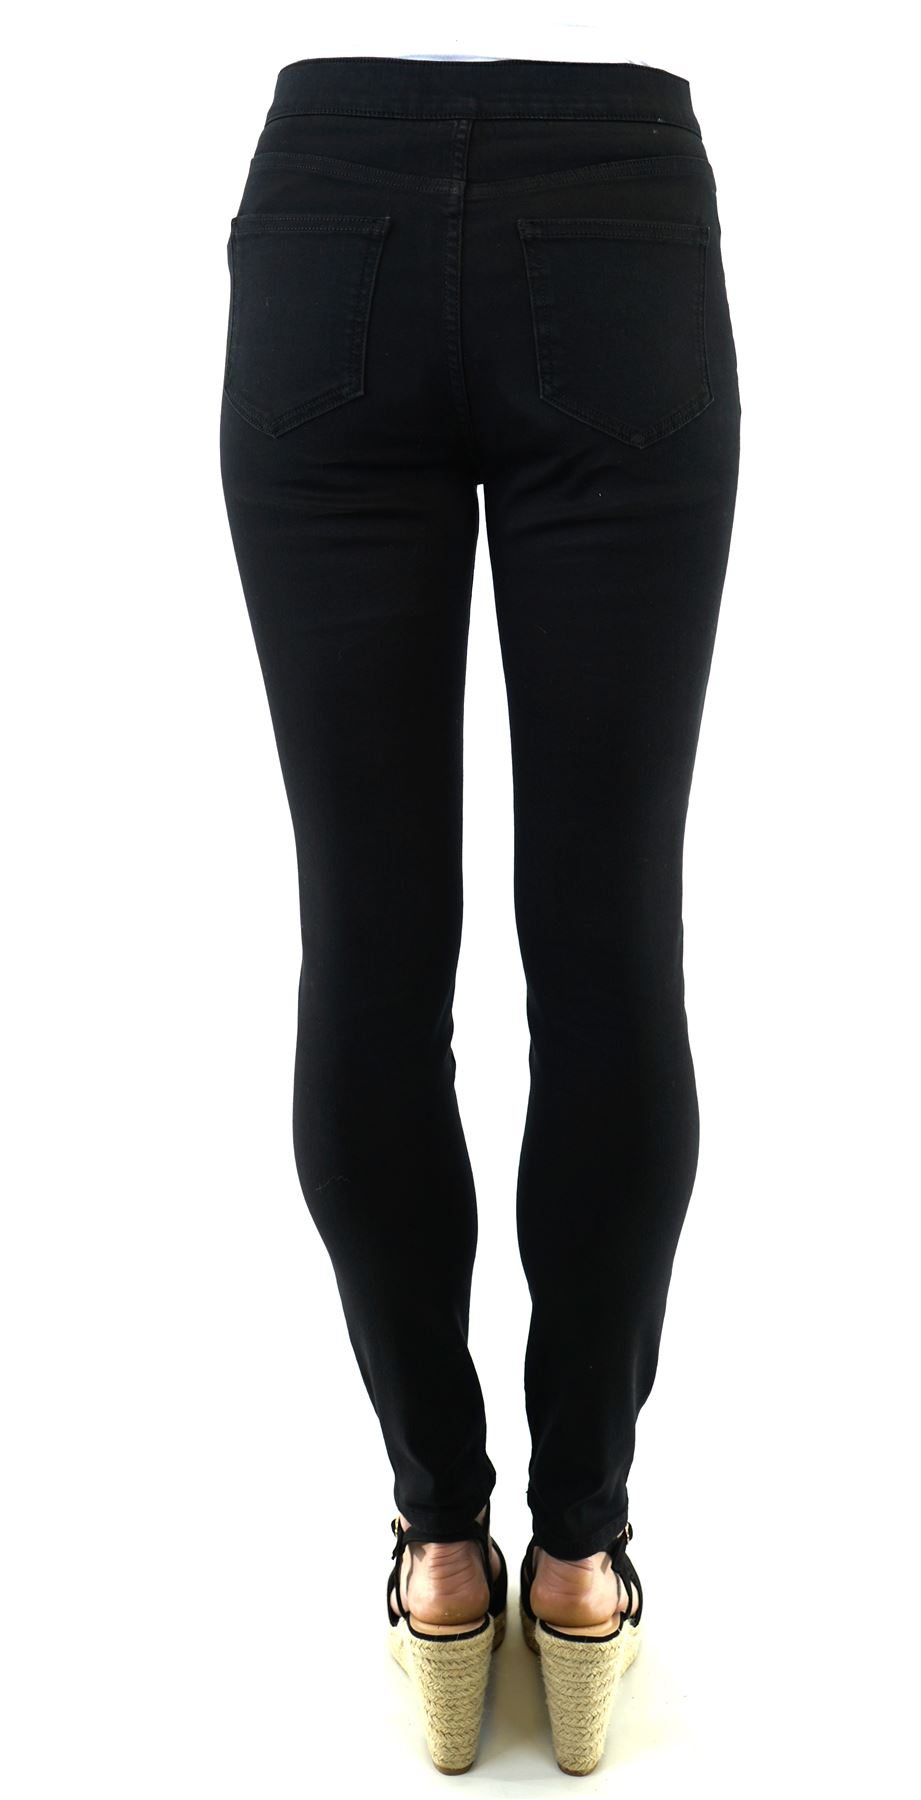 thumbnail 19 - Karen Millen Womens Casual Black Denim Button Jegging Ladies Jean Stylish Gift